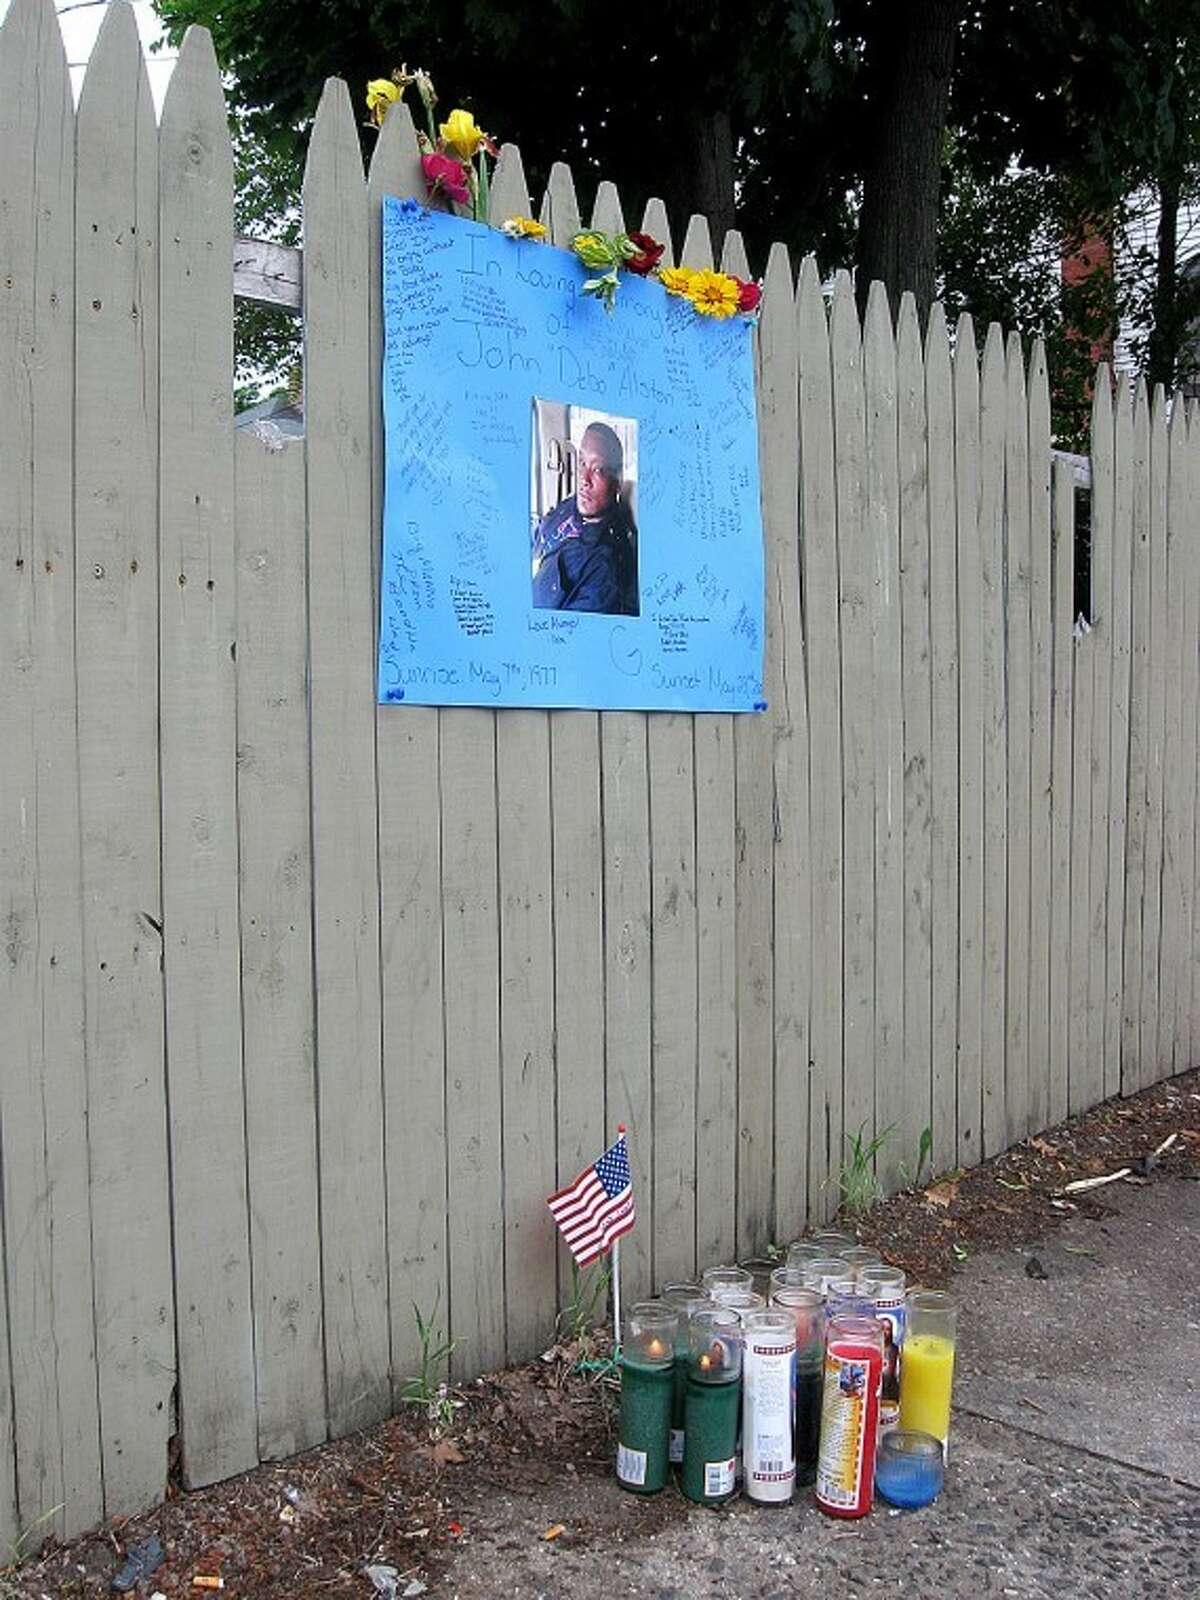 Hour photo/ Chase Wright Shrine in South Norwalk to shooting victim John